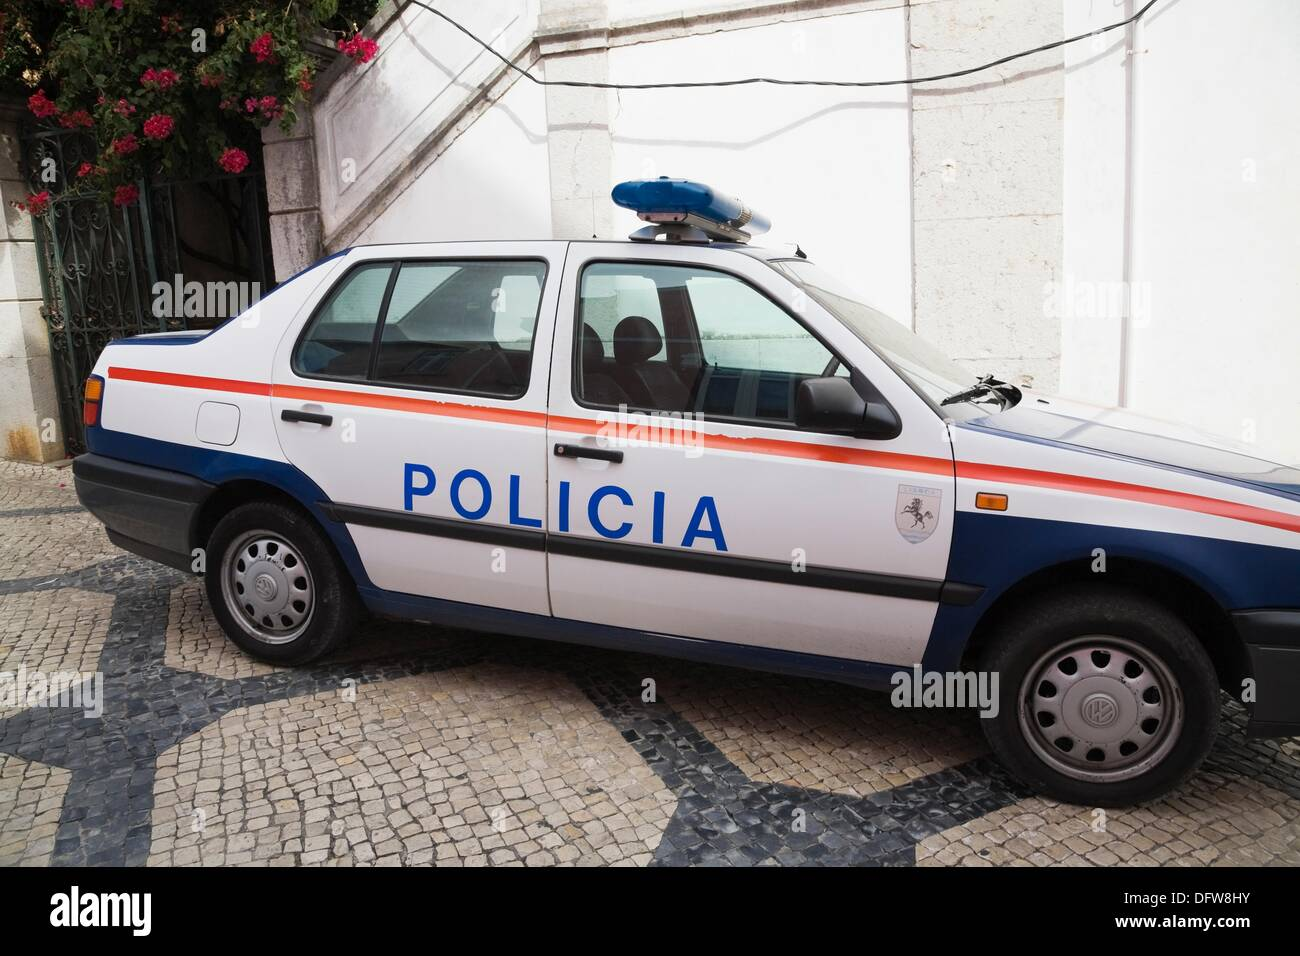 parked police car on a city street in cascais portugal europe stock photo royalty free image. Black Bedroom Furniture Sets. Home Design Ideas